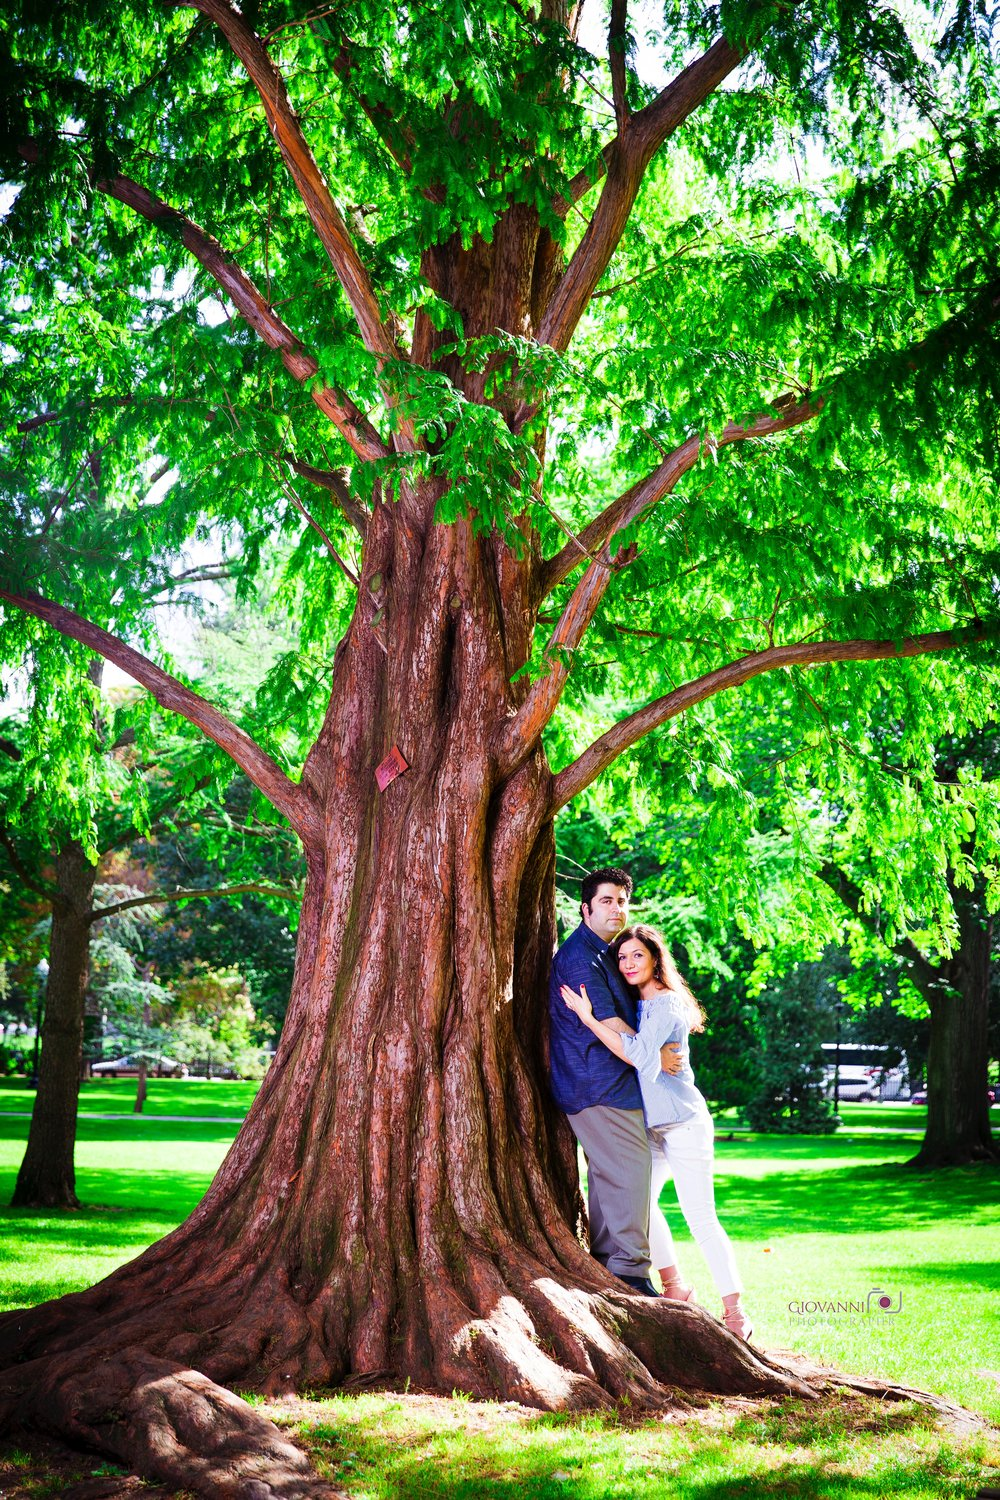 8C2A8633 Giovanni The Photographer Best Boston Engagement Photography Public Gardens - Commons WM100.jpg